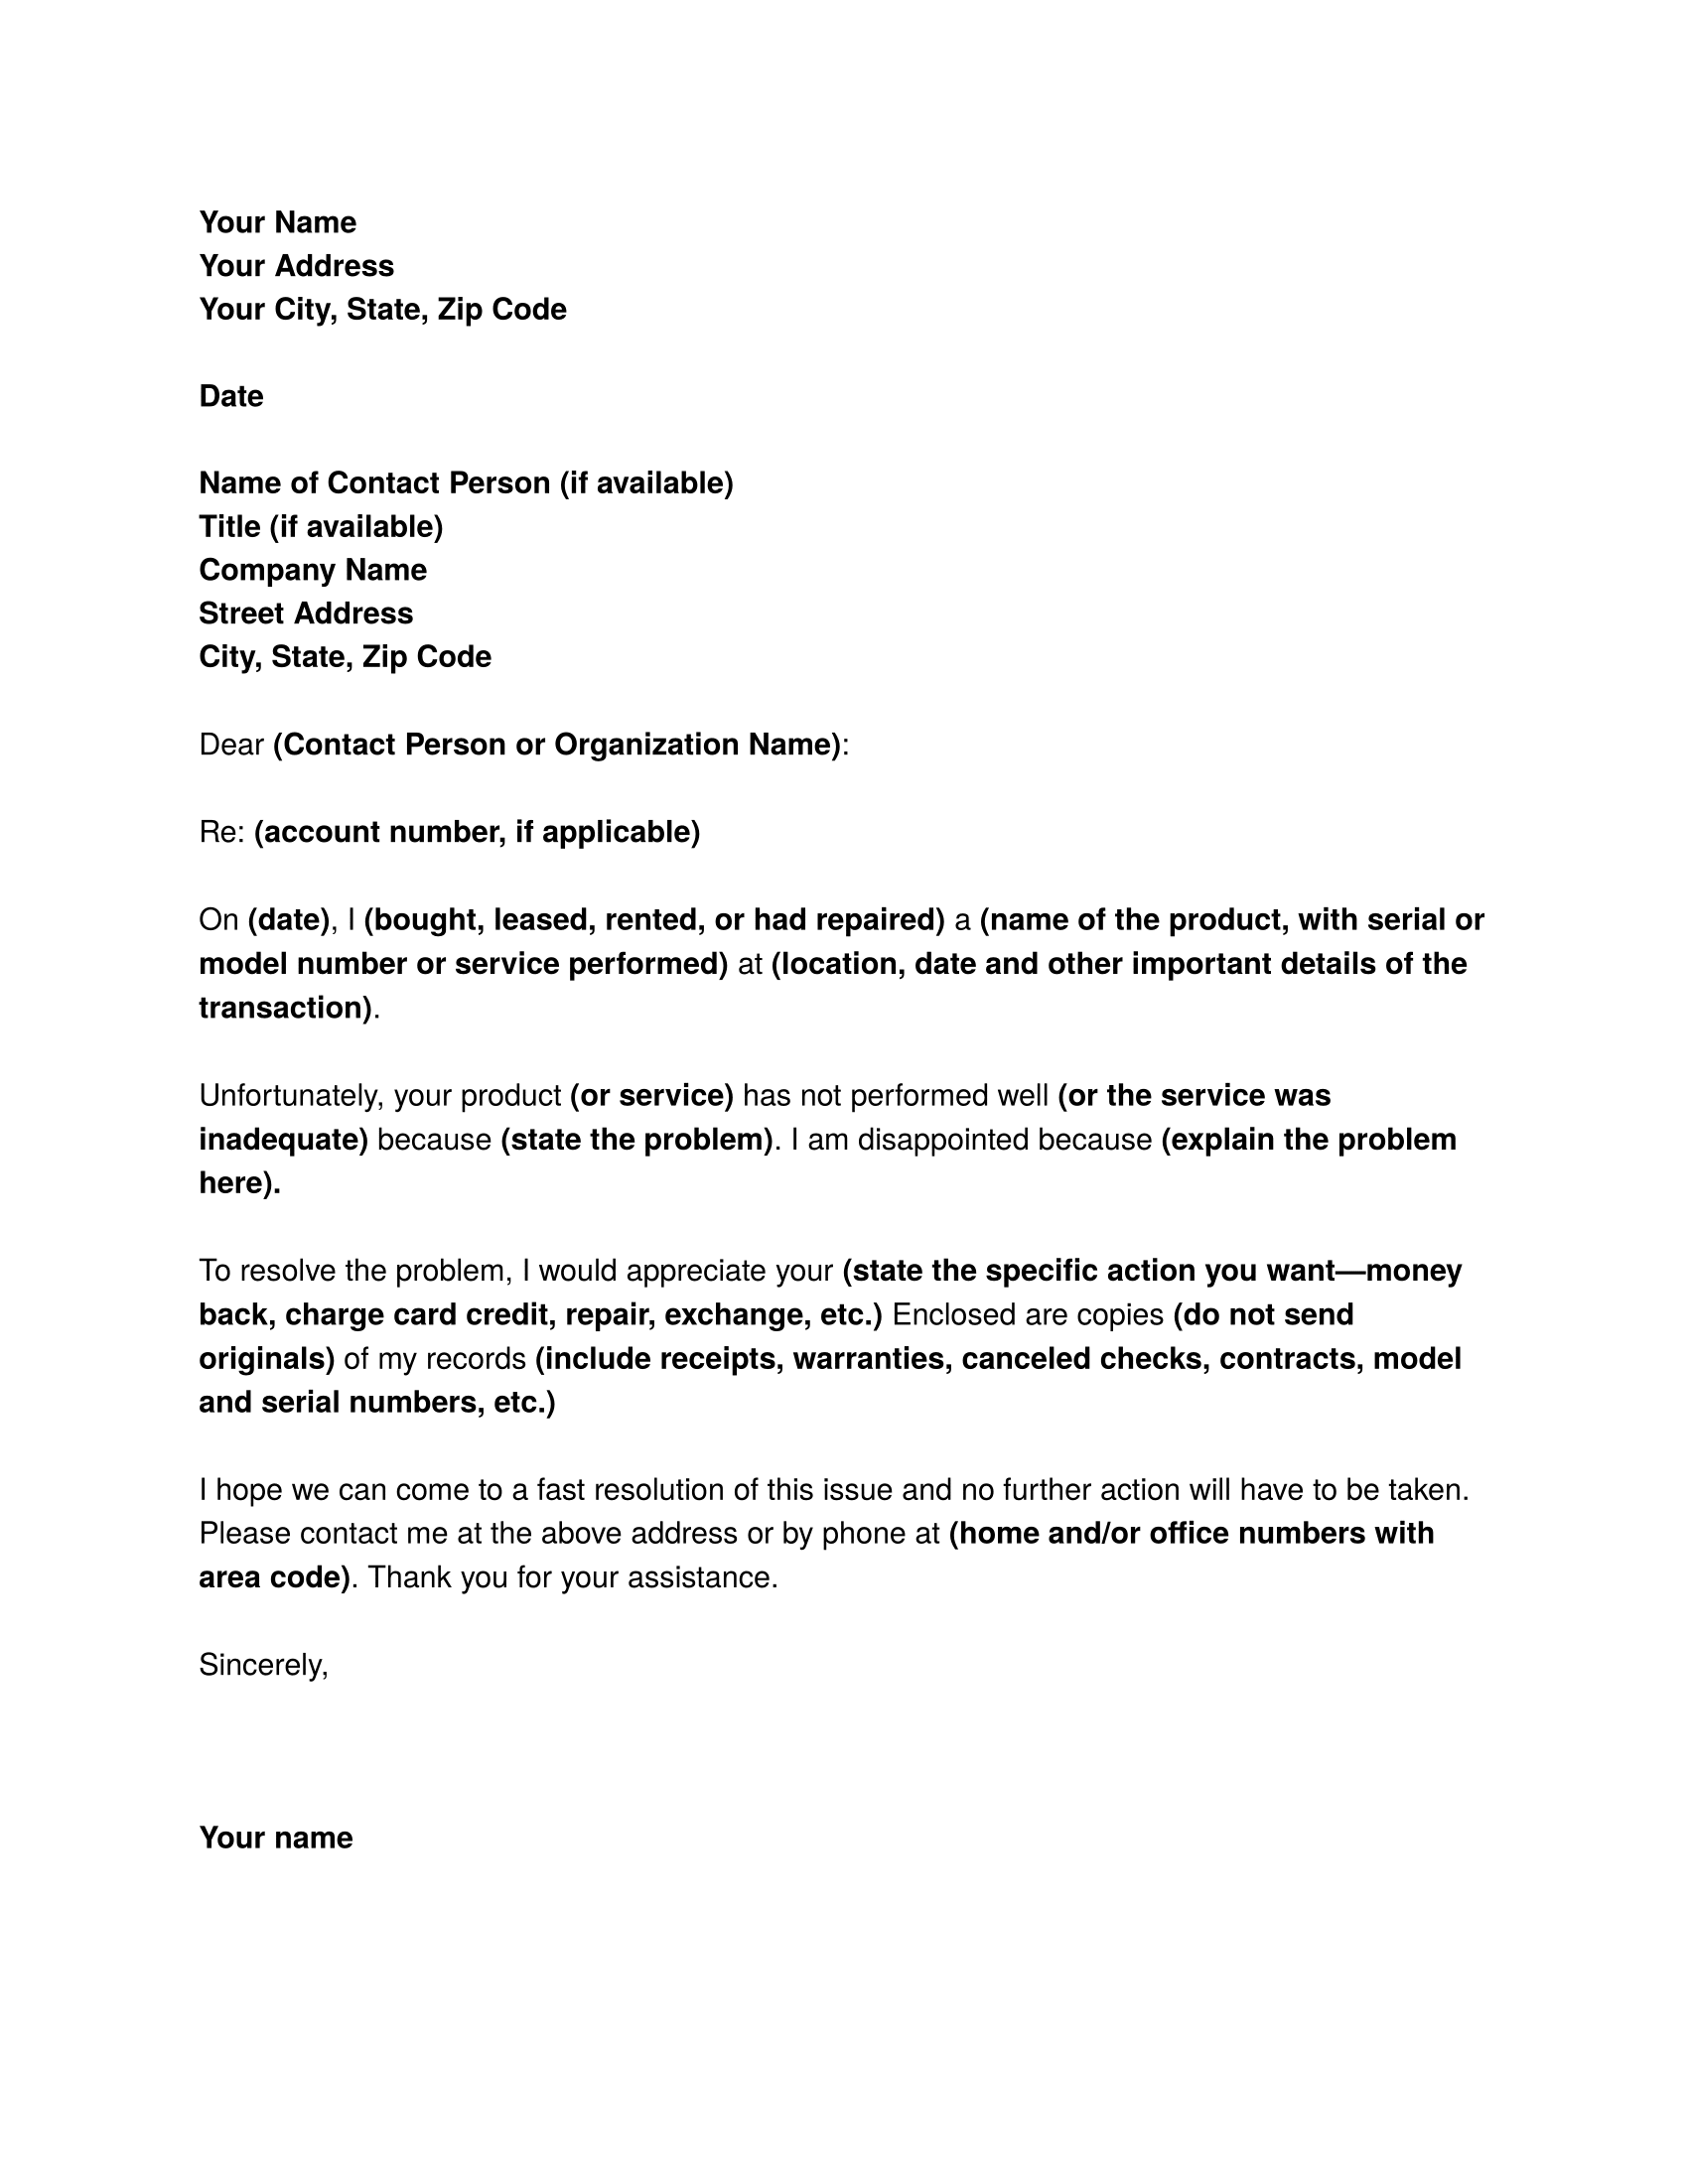 Complaint Letter Sample - Download FREE Business Letter Templates ...